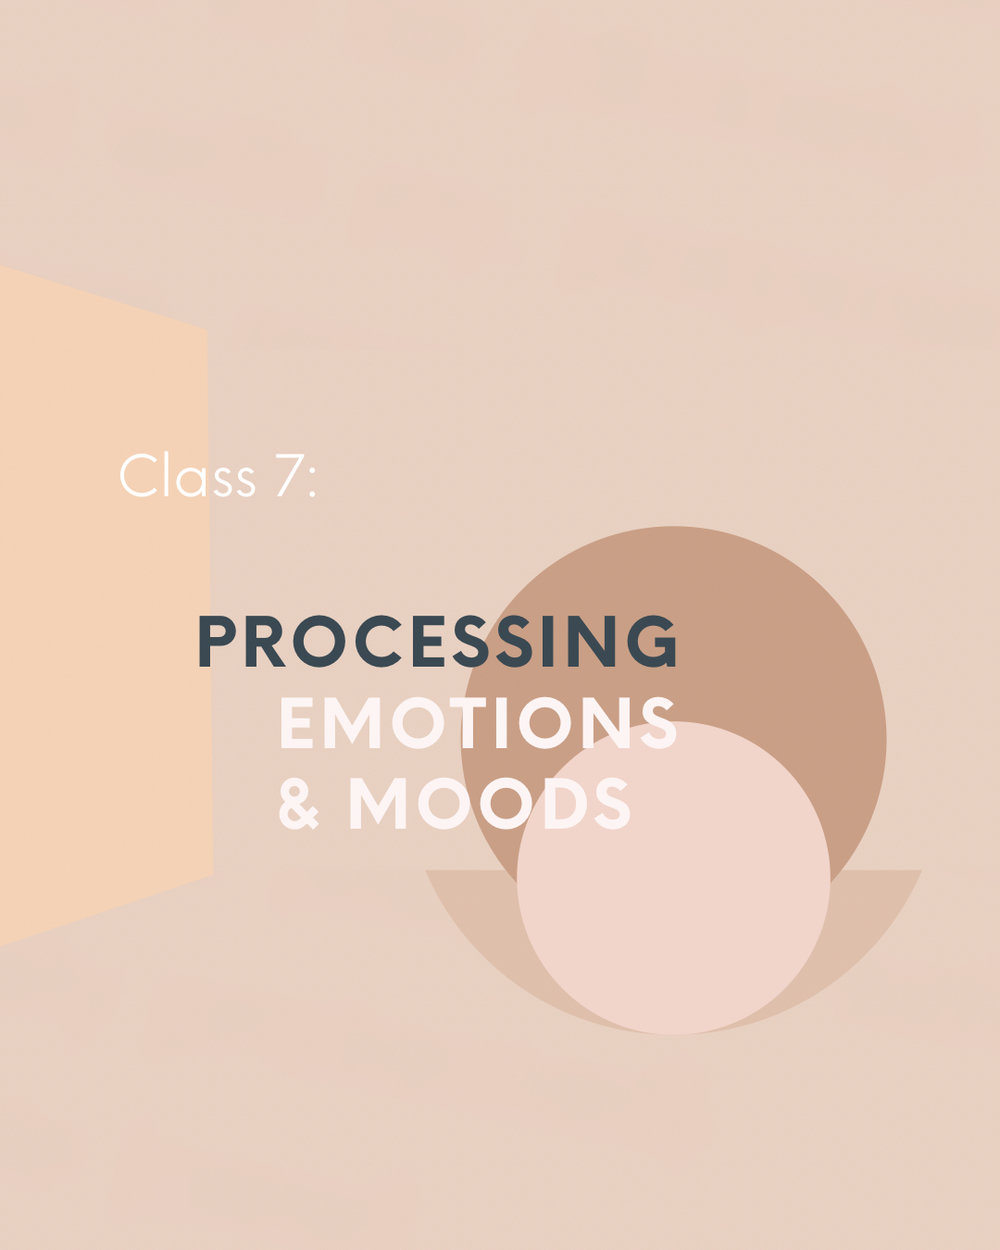 Processing Emotions & Moods - Emotions are teachers and guides.This class is about empowering you to (effectively) feel what you need to feel–and to (effectively) release all else, go beyond, and rise above.Learn the empowering art of processing your emotions and moods, this Saturday!